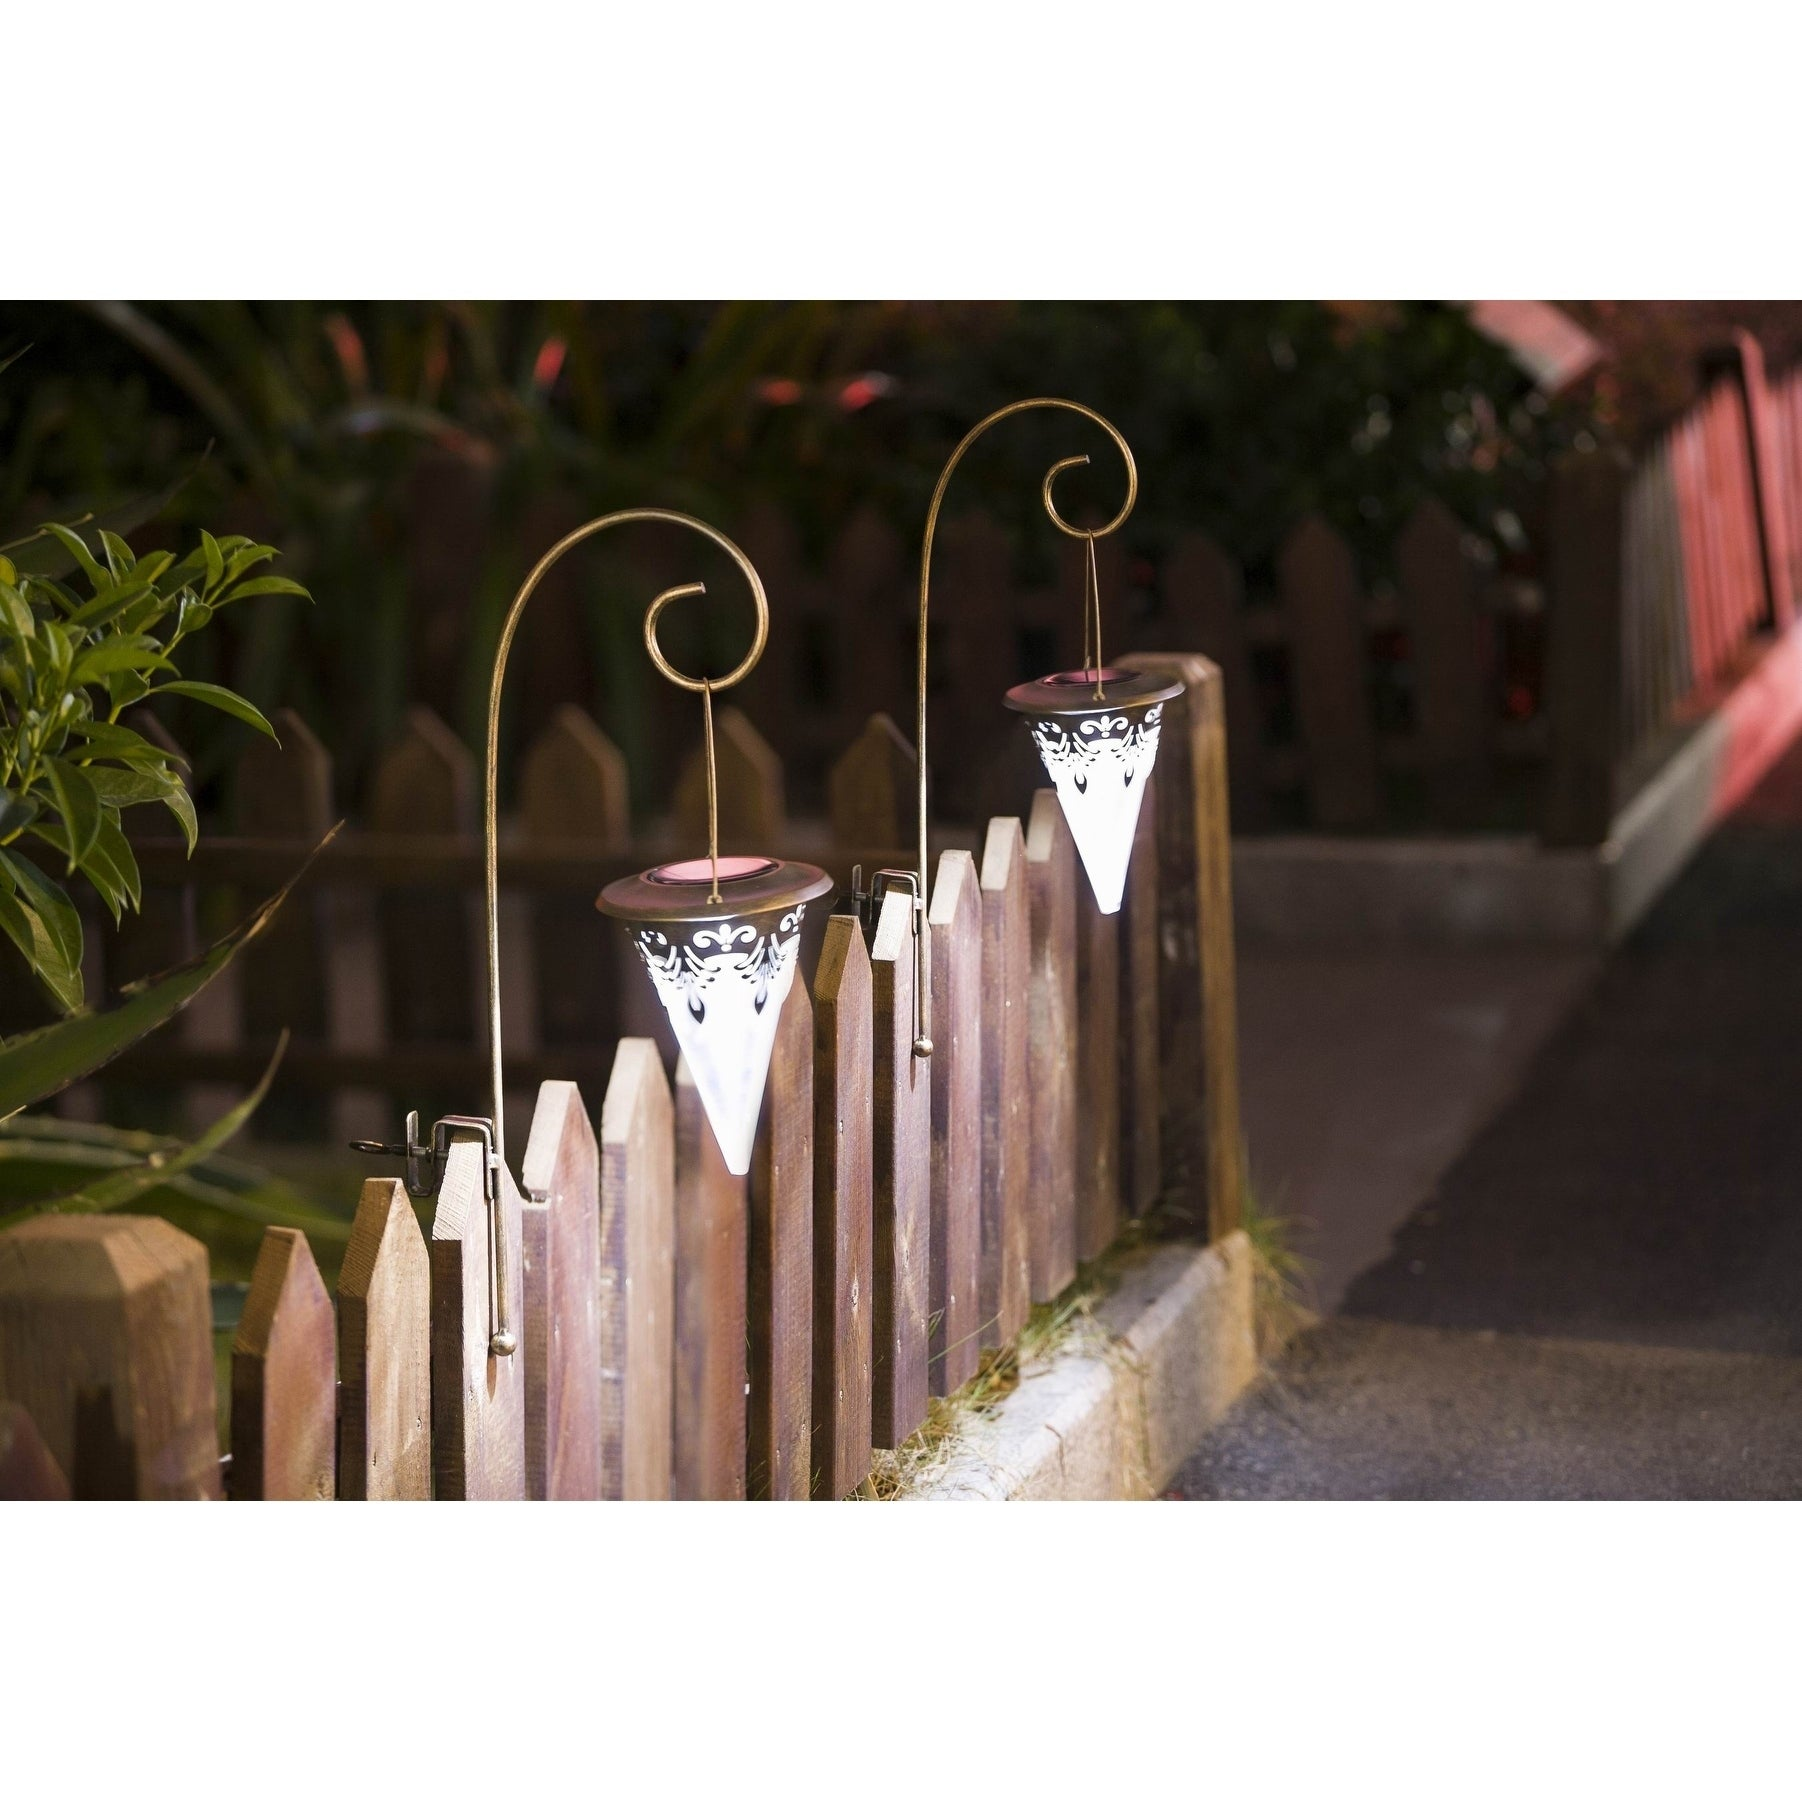 Set of 2 Tapered Solar Lights with Fence hook attachment ...